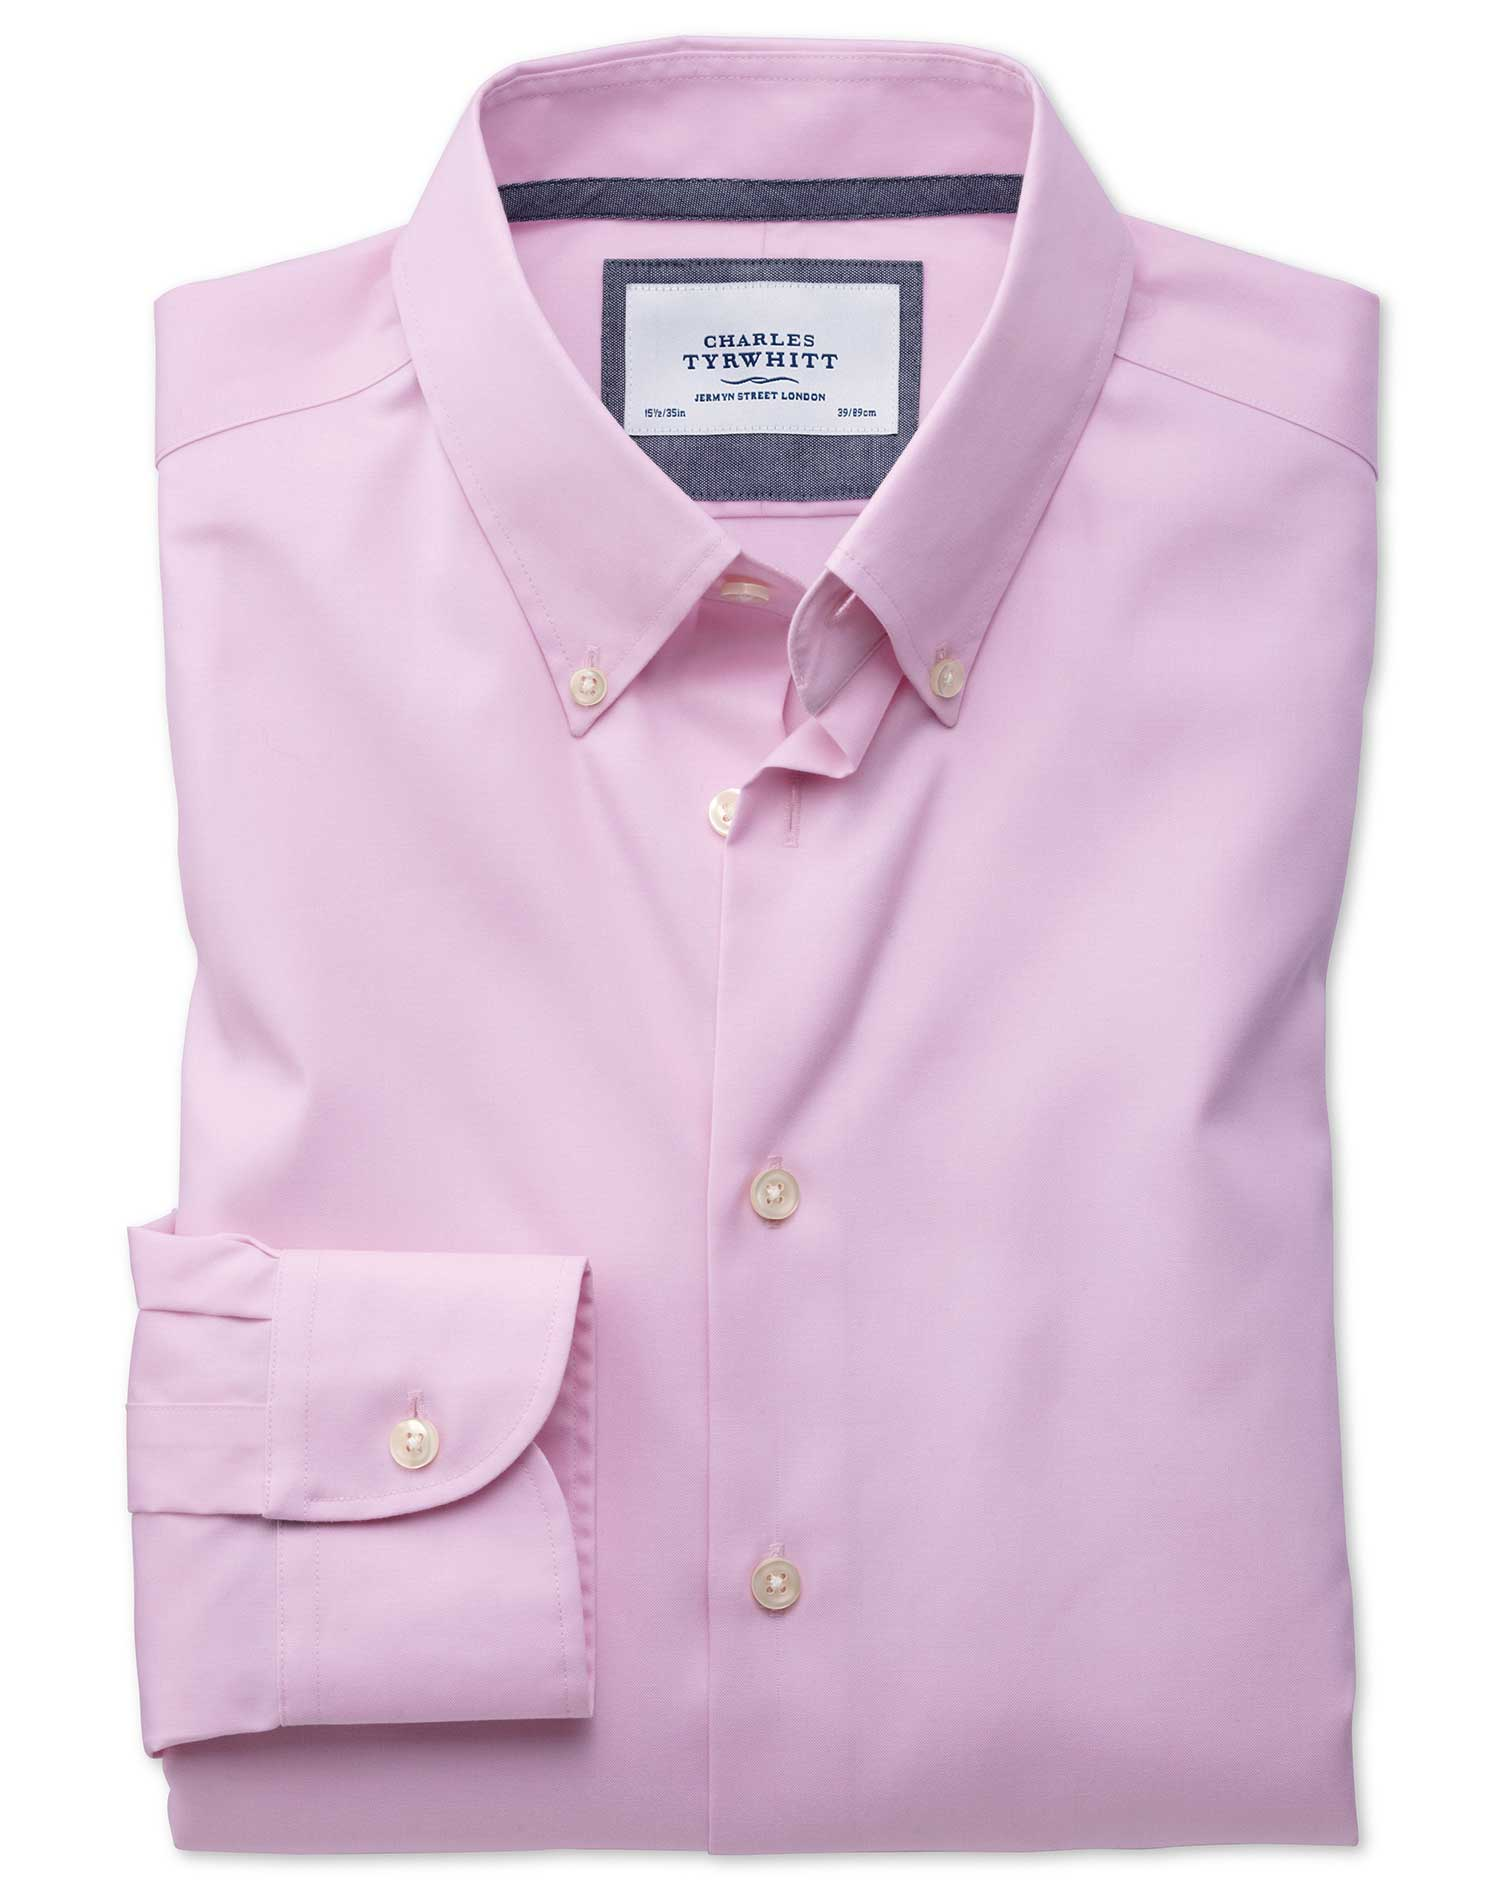 Slim Fit Button-Down Business Casual Non-Iron Light Pink Cotton Formal Shirt Single Cuff Size 17.5/3